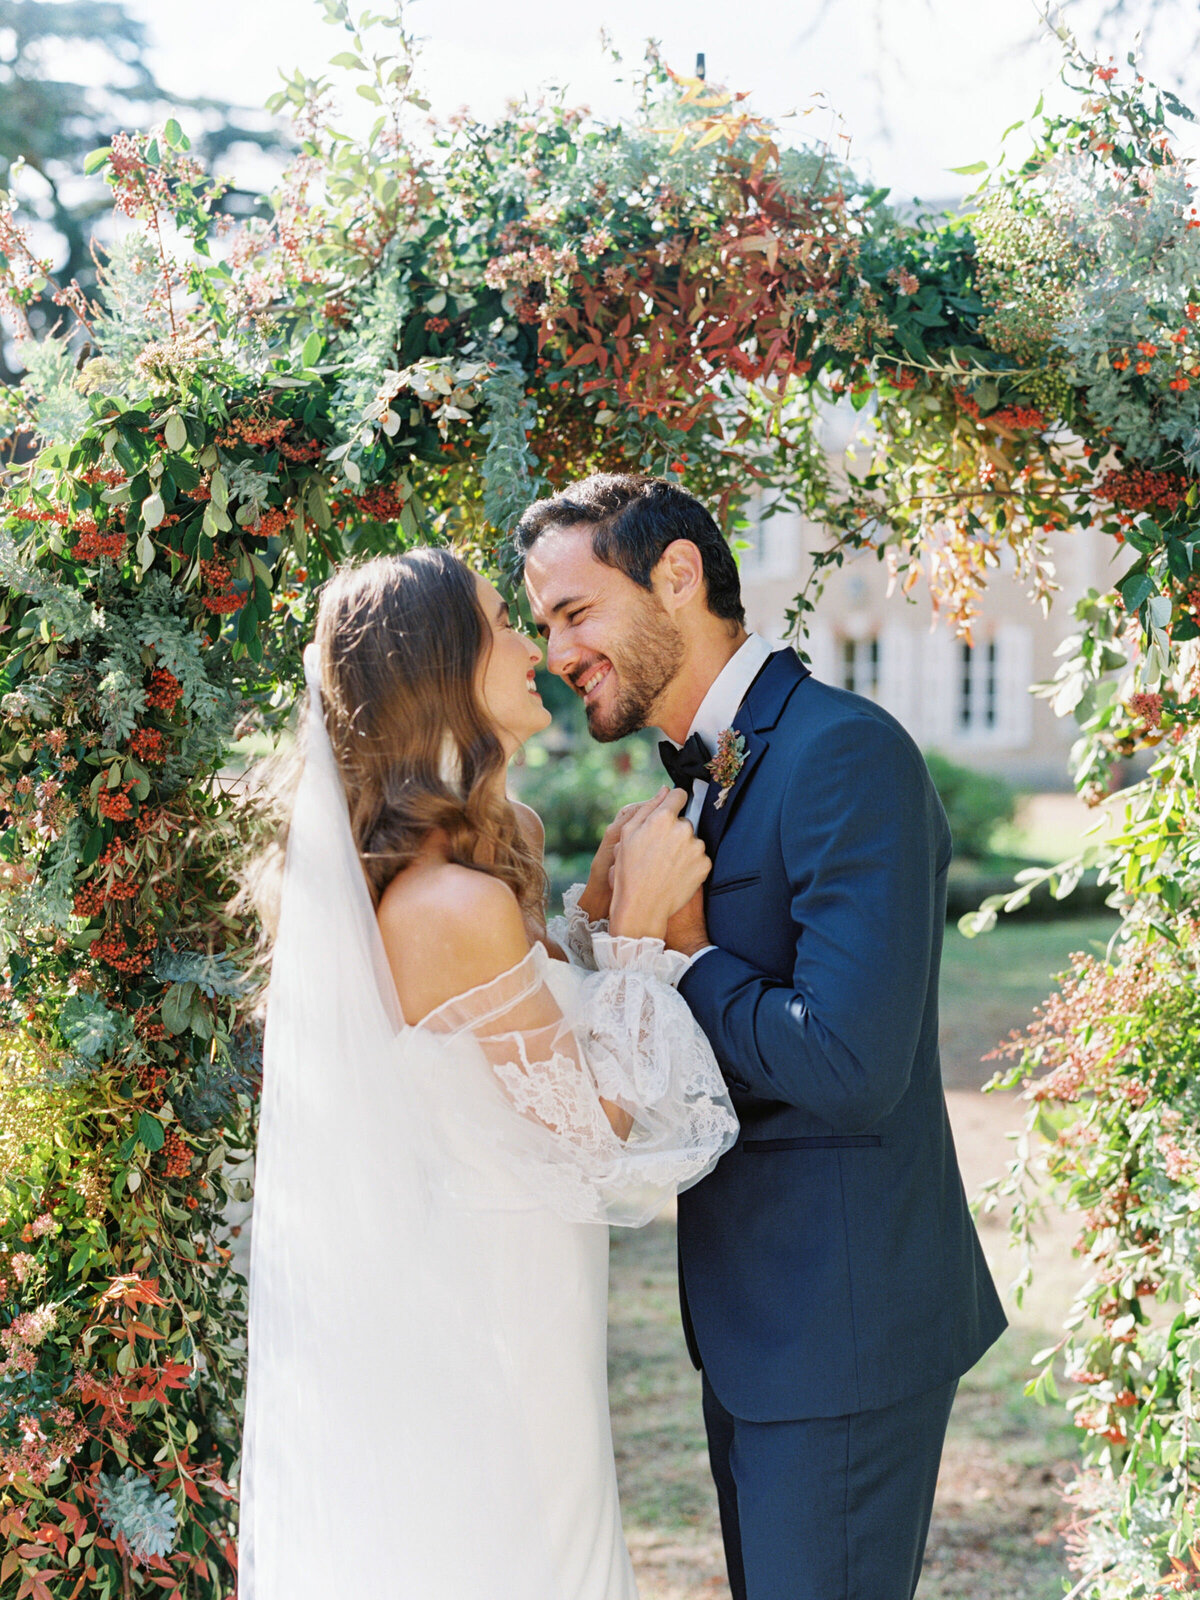 chateau-bouthonvilliers-wedding-paris-wedding-photographer-mackenzie-reiter-photography-79